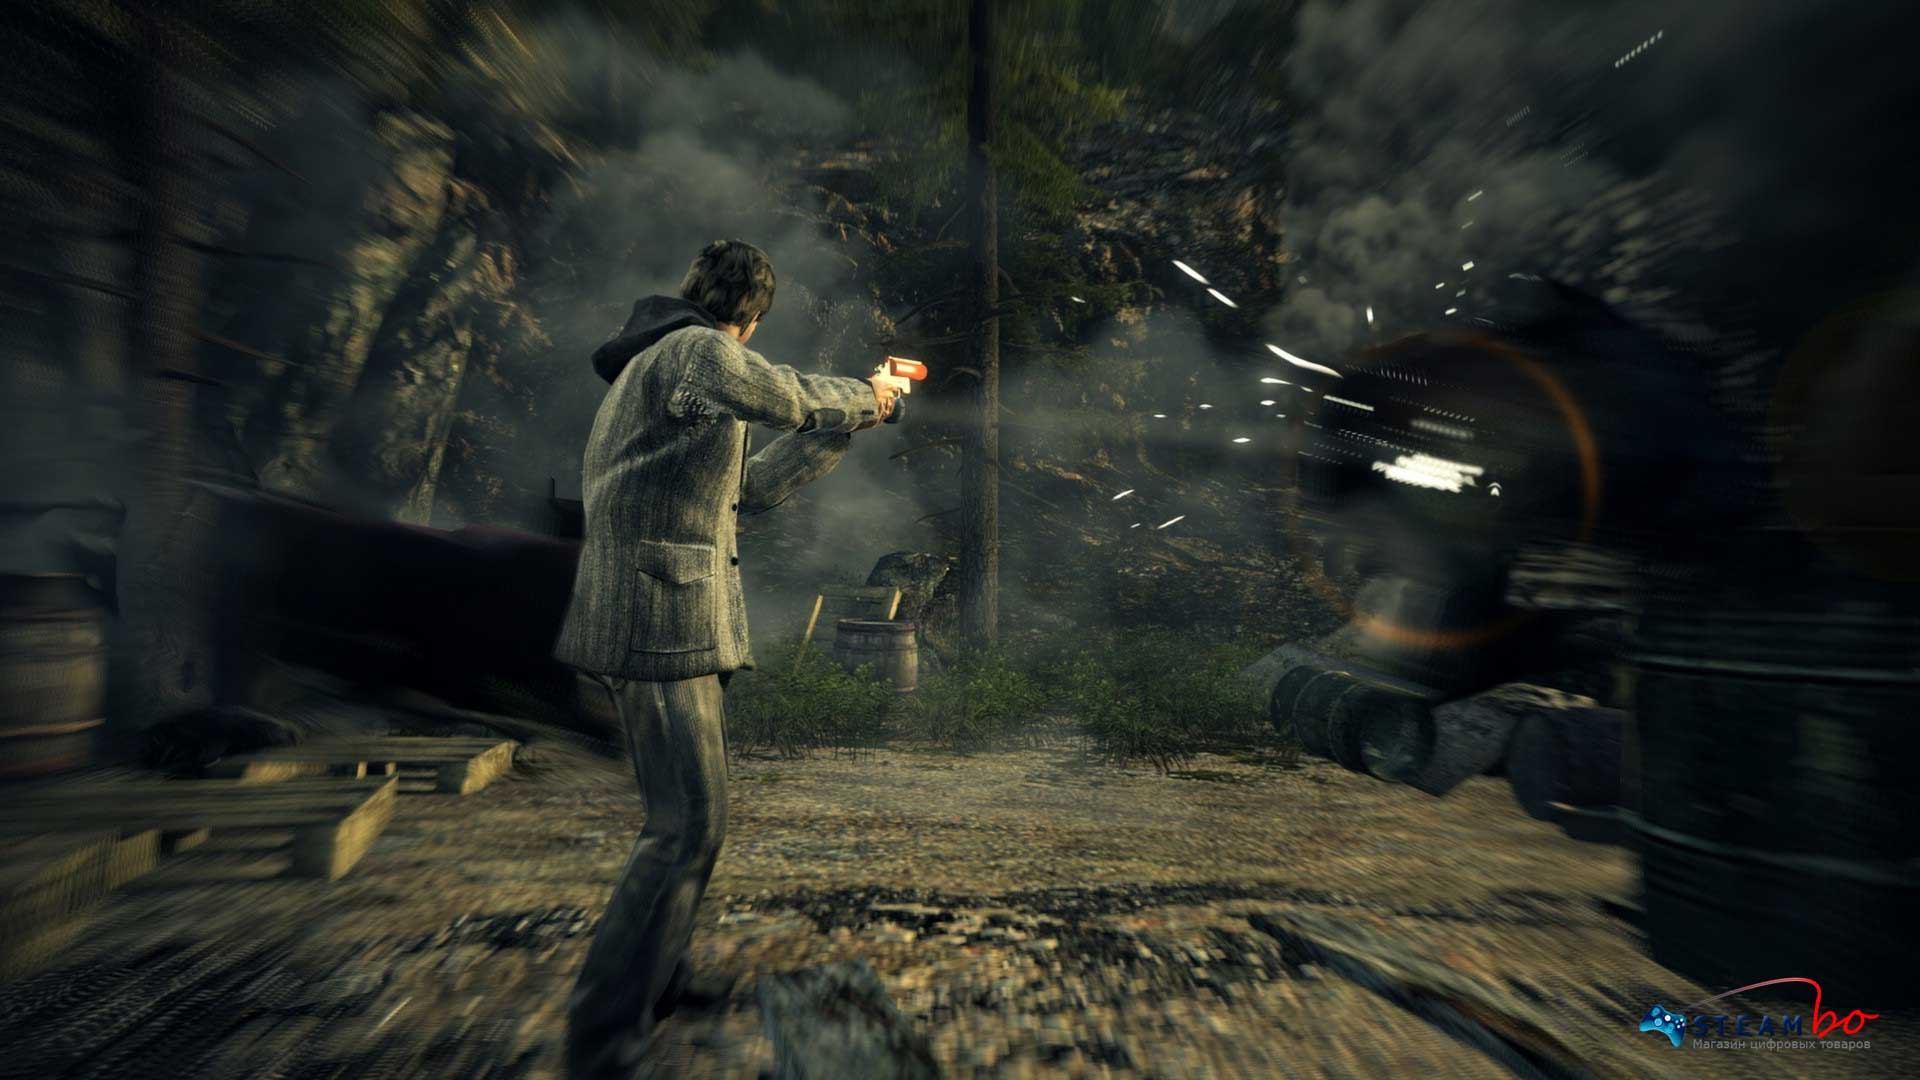 Alan Wake Region Free (Steam Gift / Key)